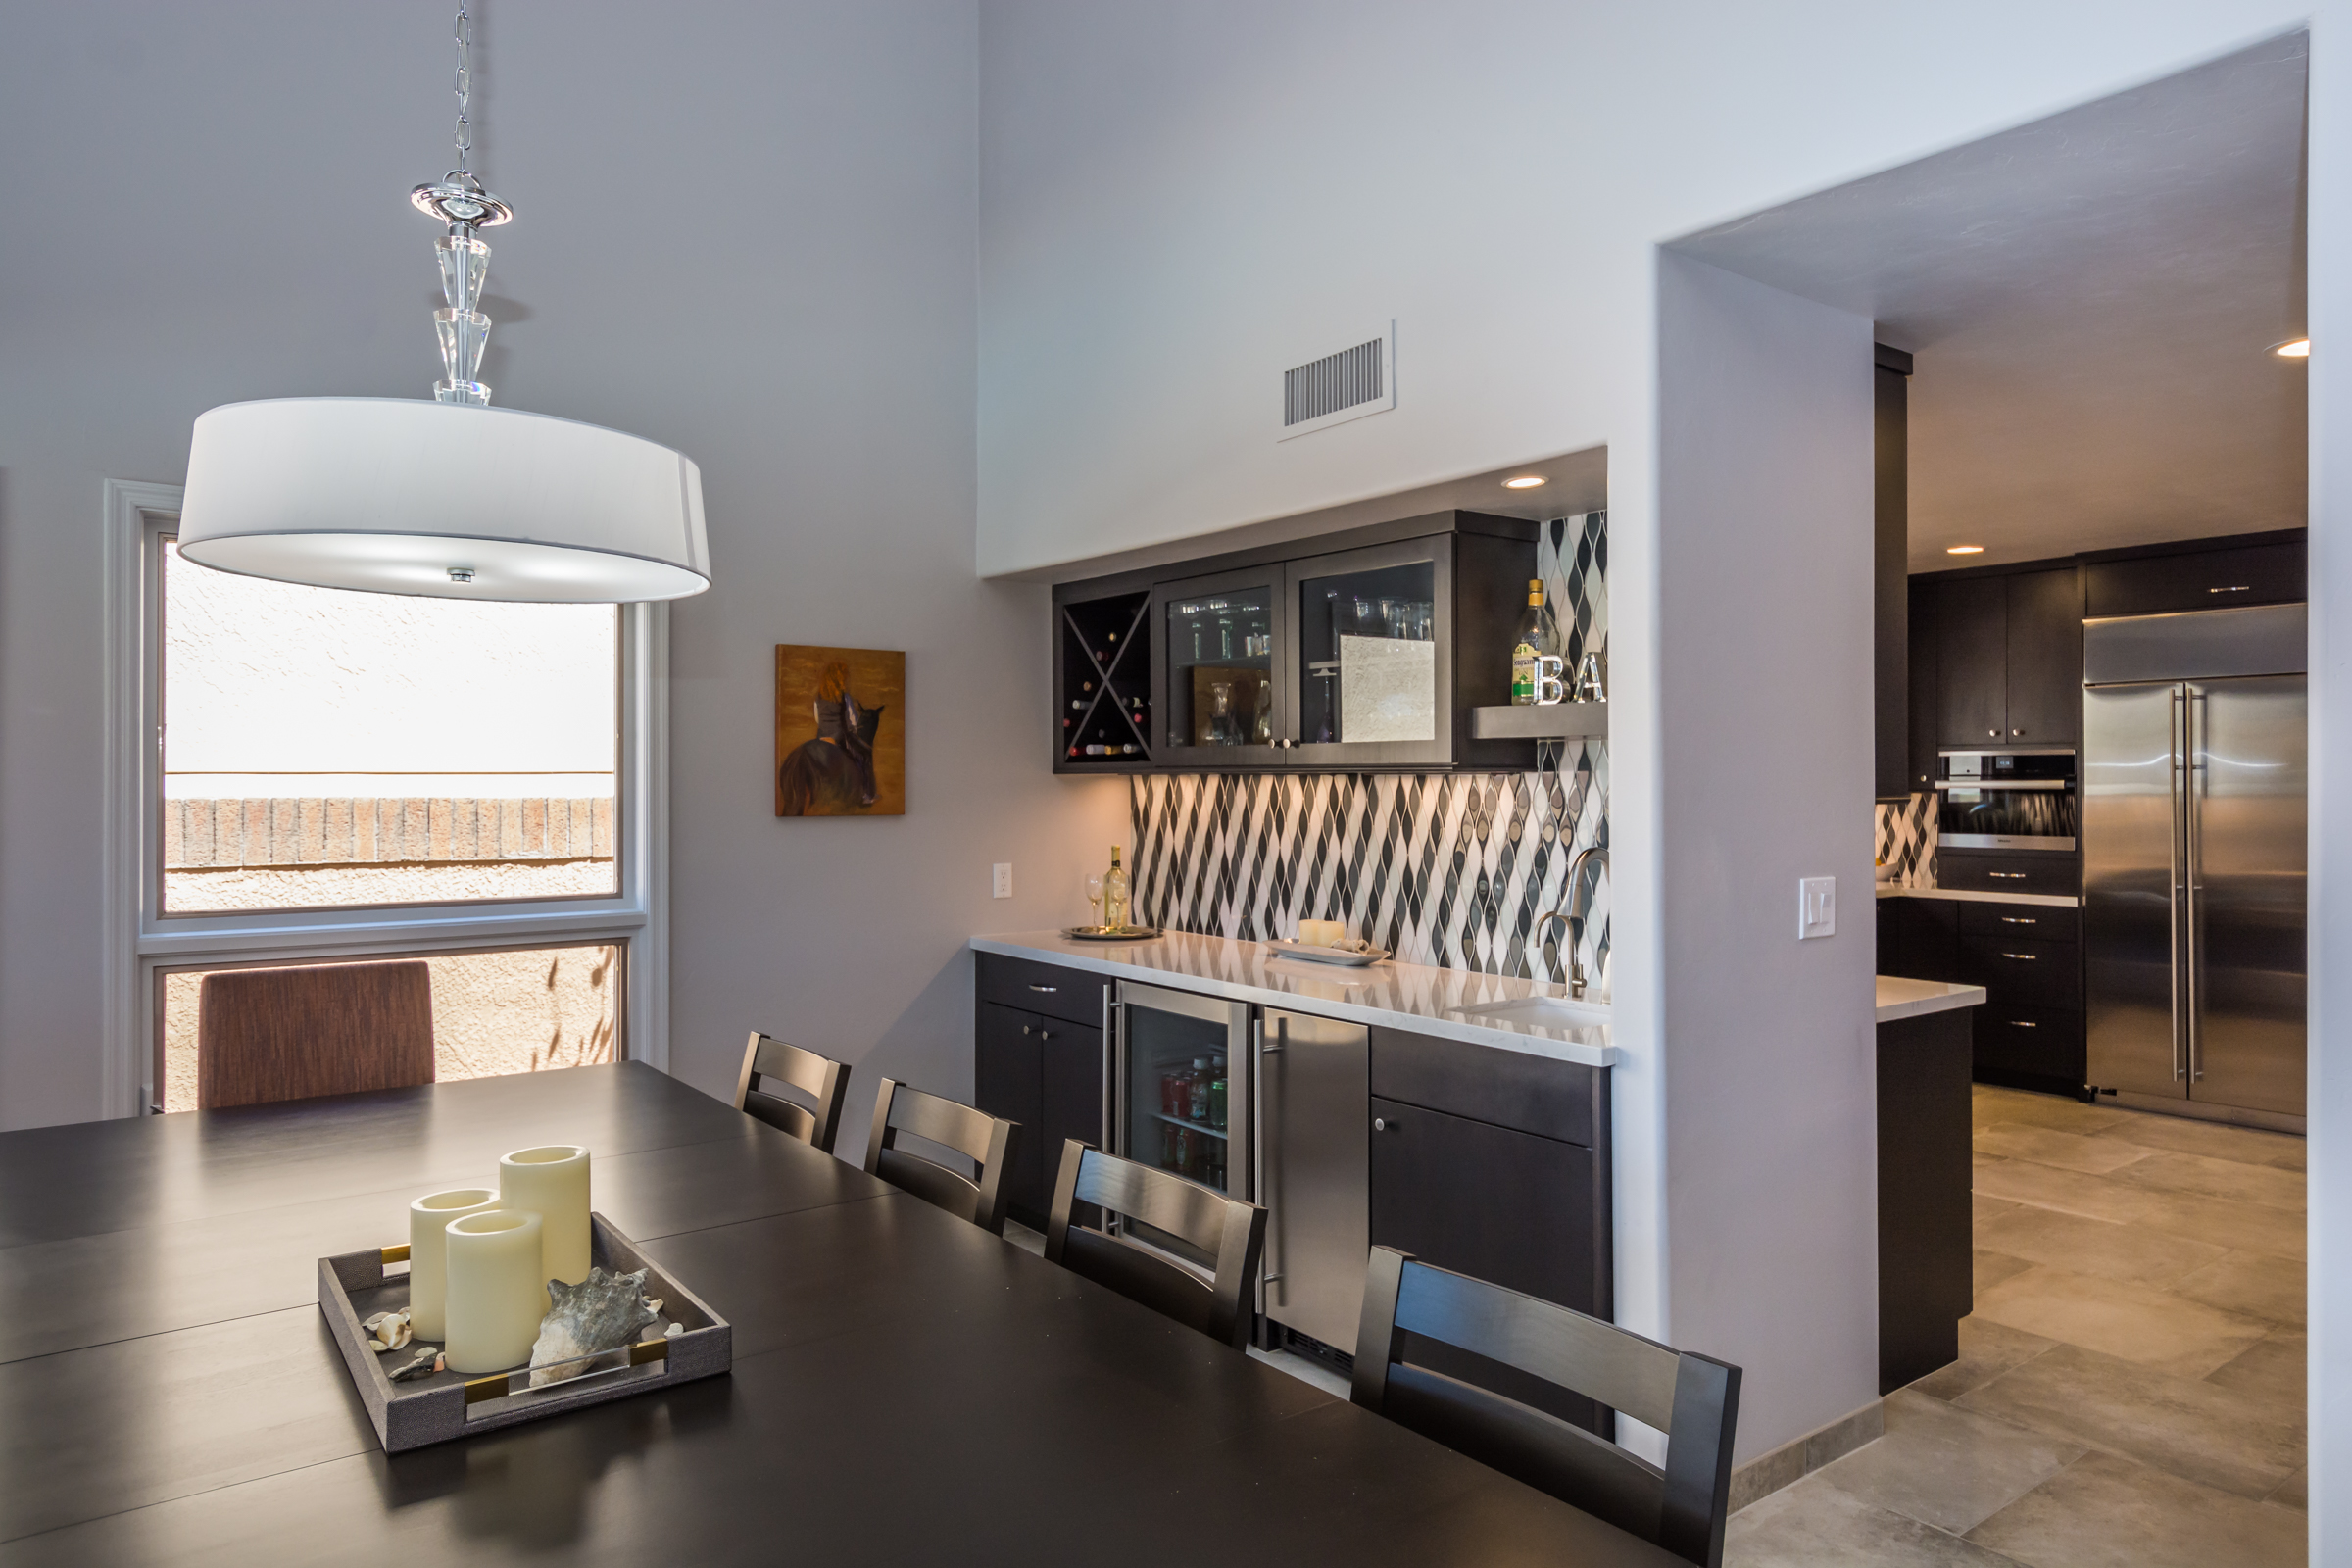 complete transitional home remodel - Canyon Cabinetry ...